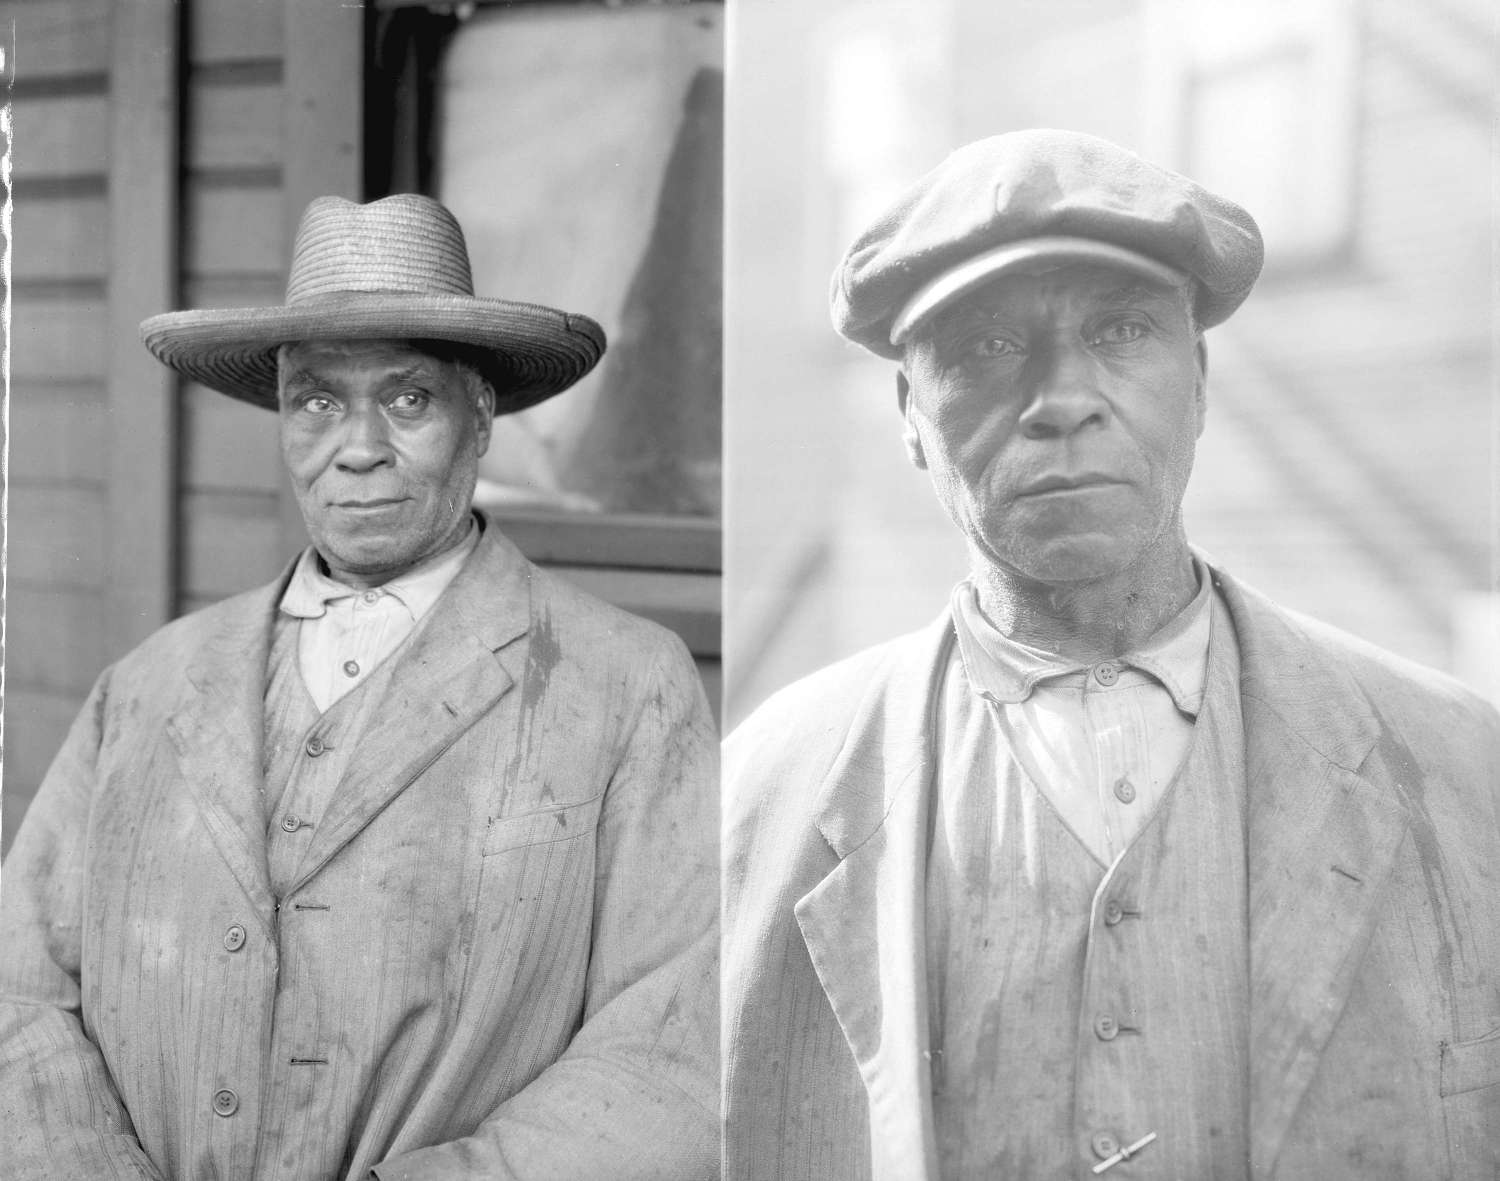 Two portraits of Fielding William Spotts, age 78, at 217 1/2 Hogan's Alley, Vancouver. May 28, 1935. Reference code AM54-S4-: Port N3.2.